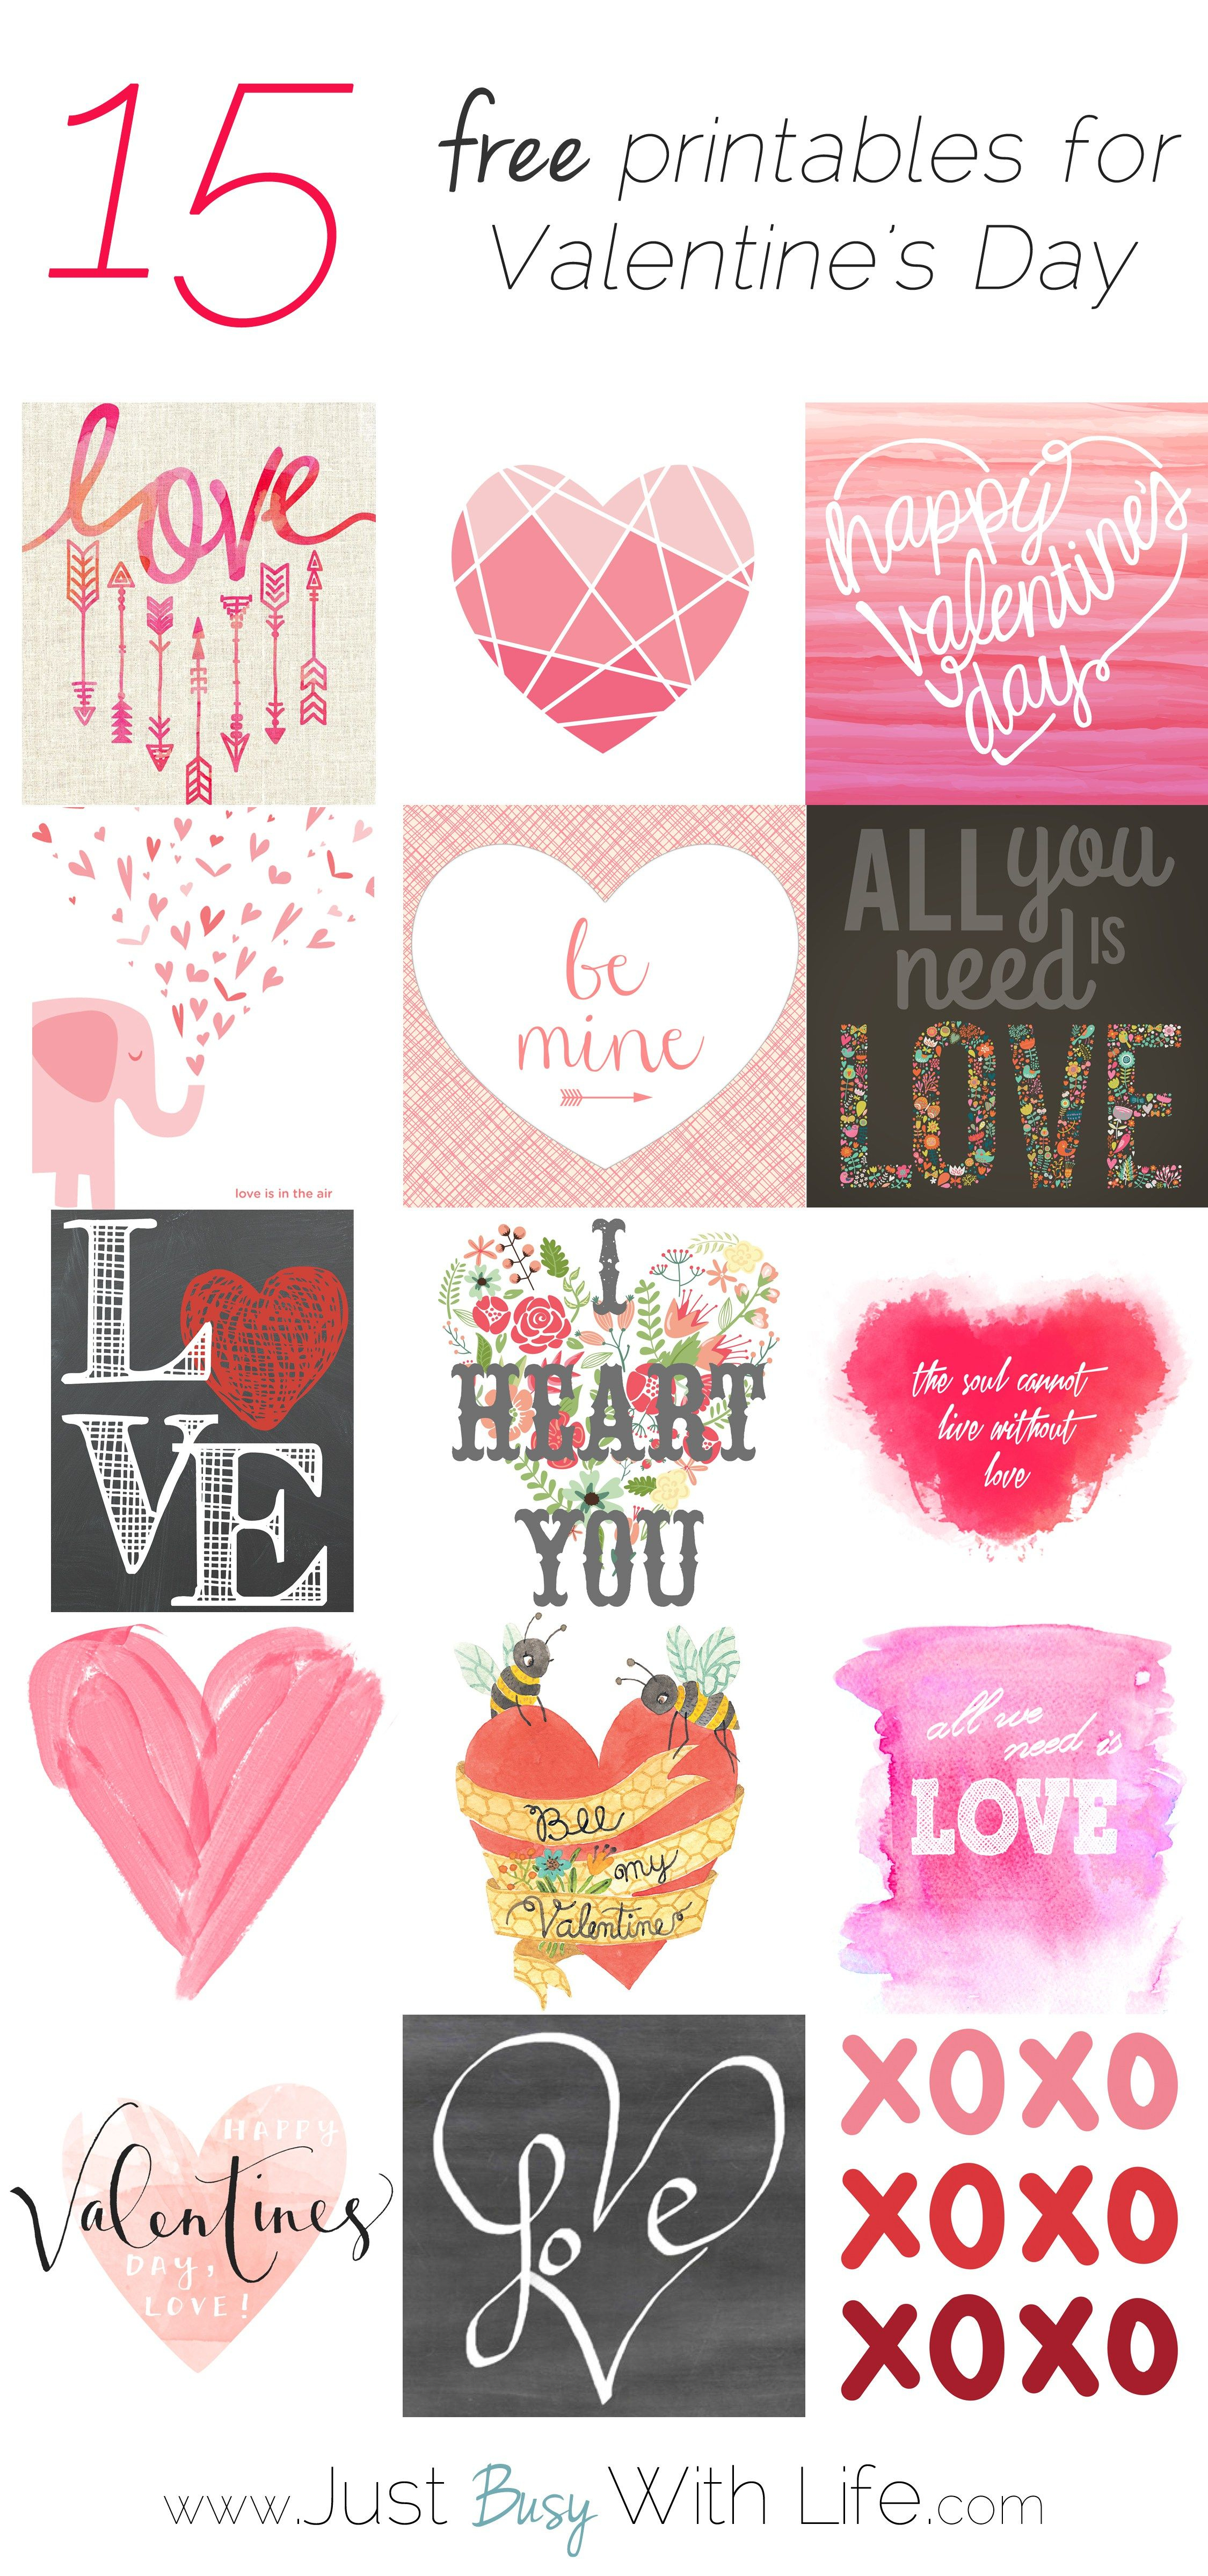 15 Free Valentine's Day Printables | Just Busy With Life - Free Printable Valentine's Day Decorations